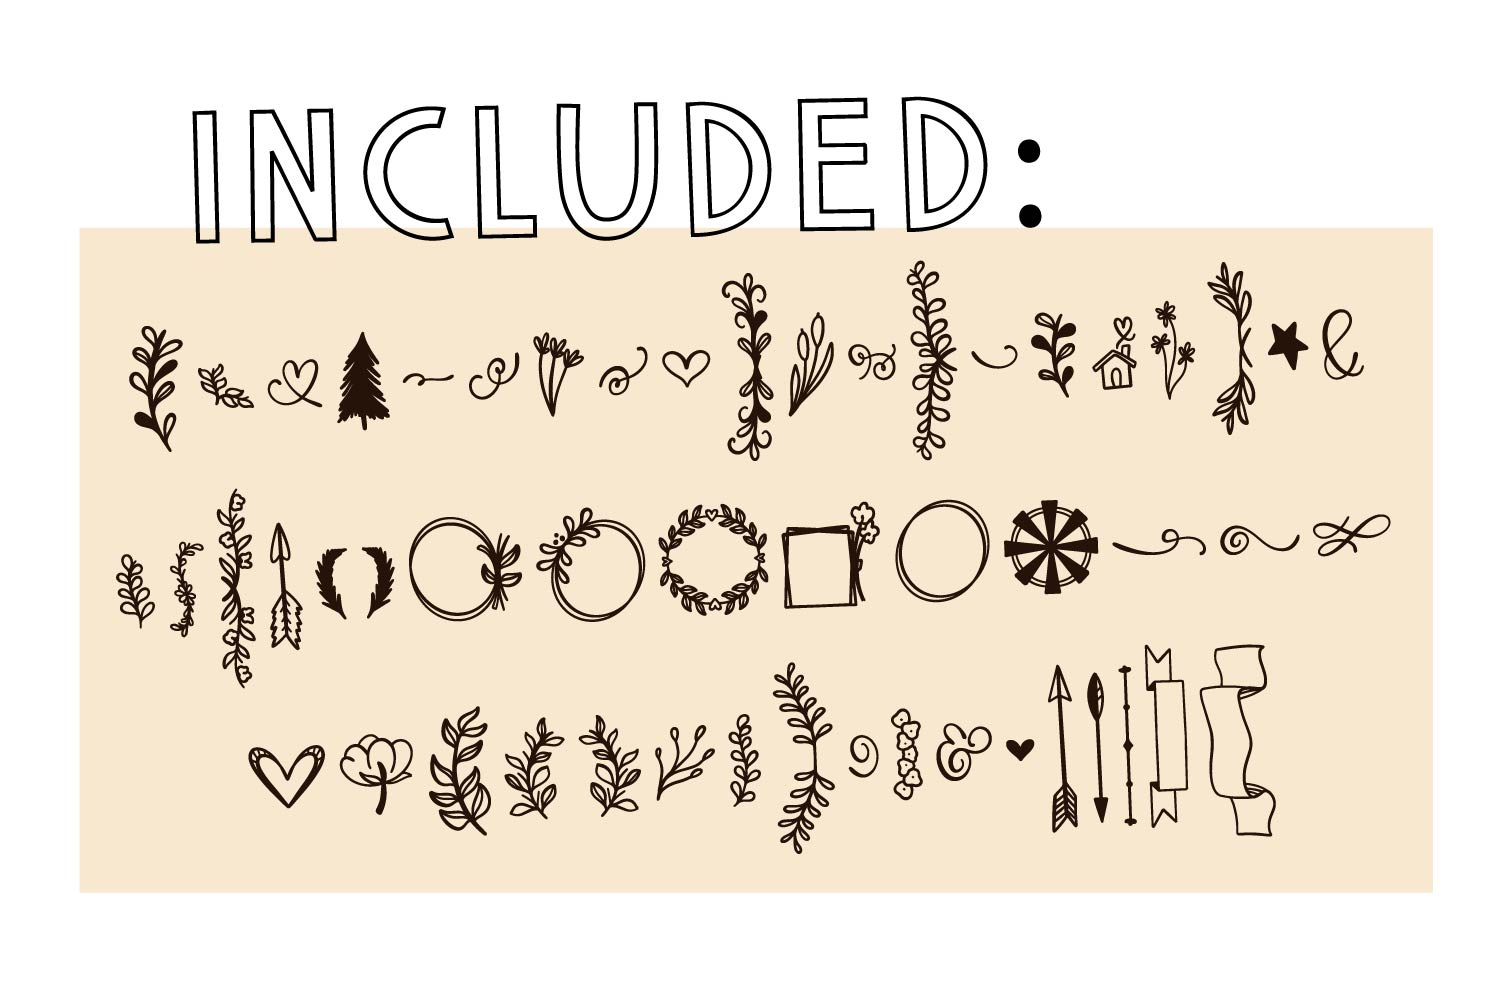 Sign Doodles - A Dingbat Font - Great For Farmhouse Signs! example image 7